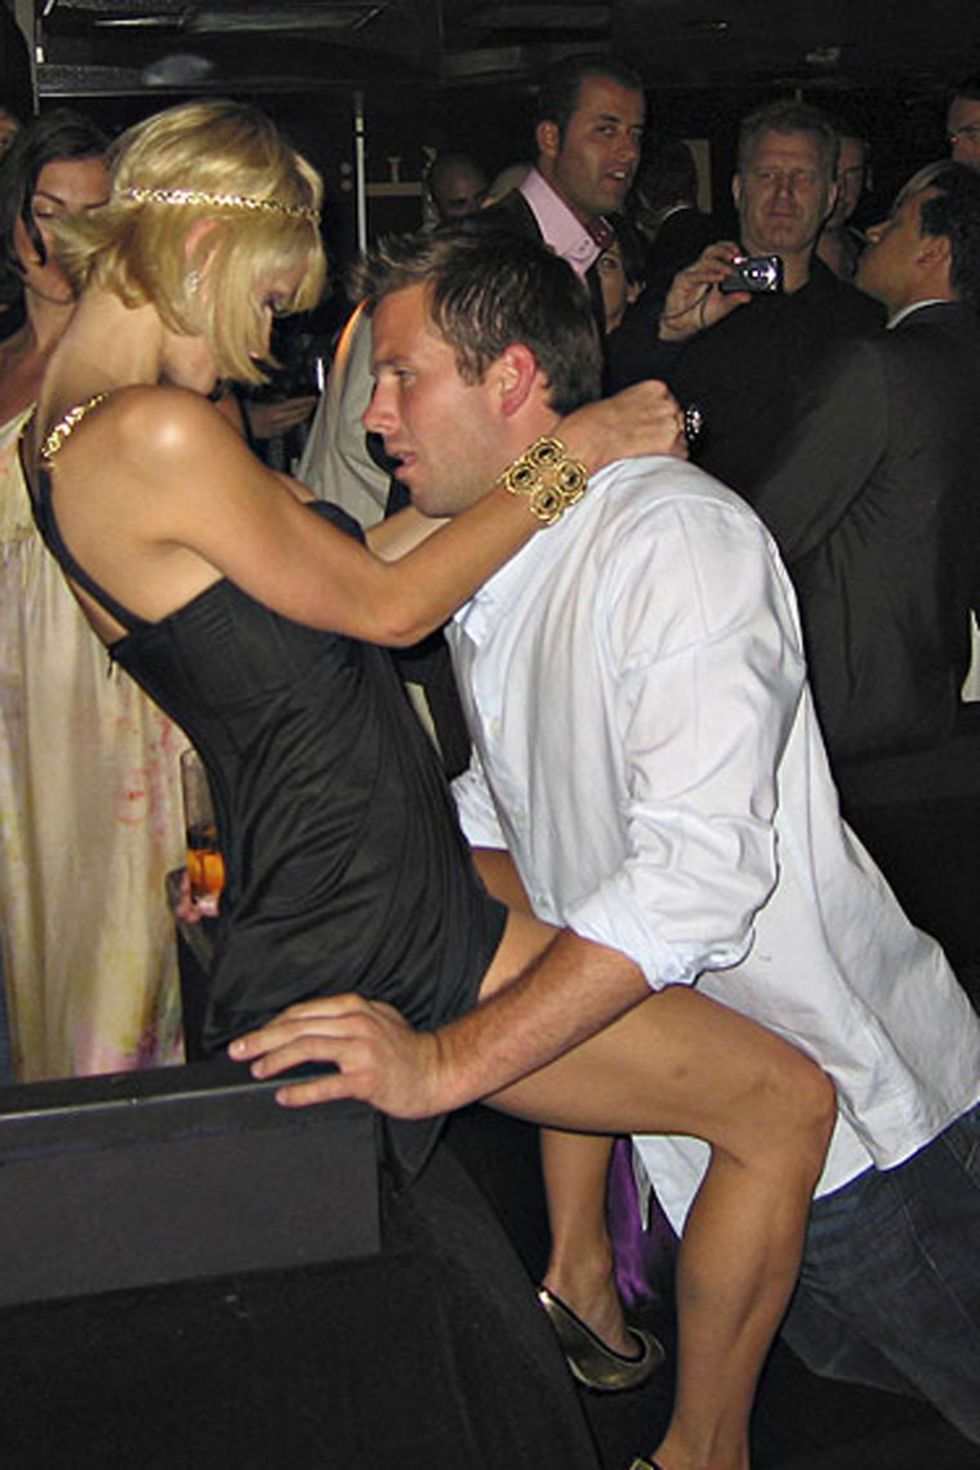 paris-hilton-lapdance-candids-at-a-party-in-cannes-lq-01